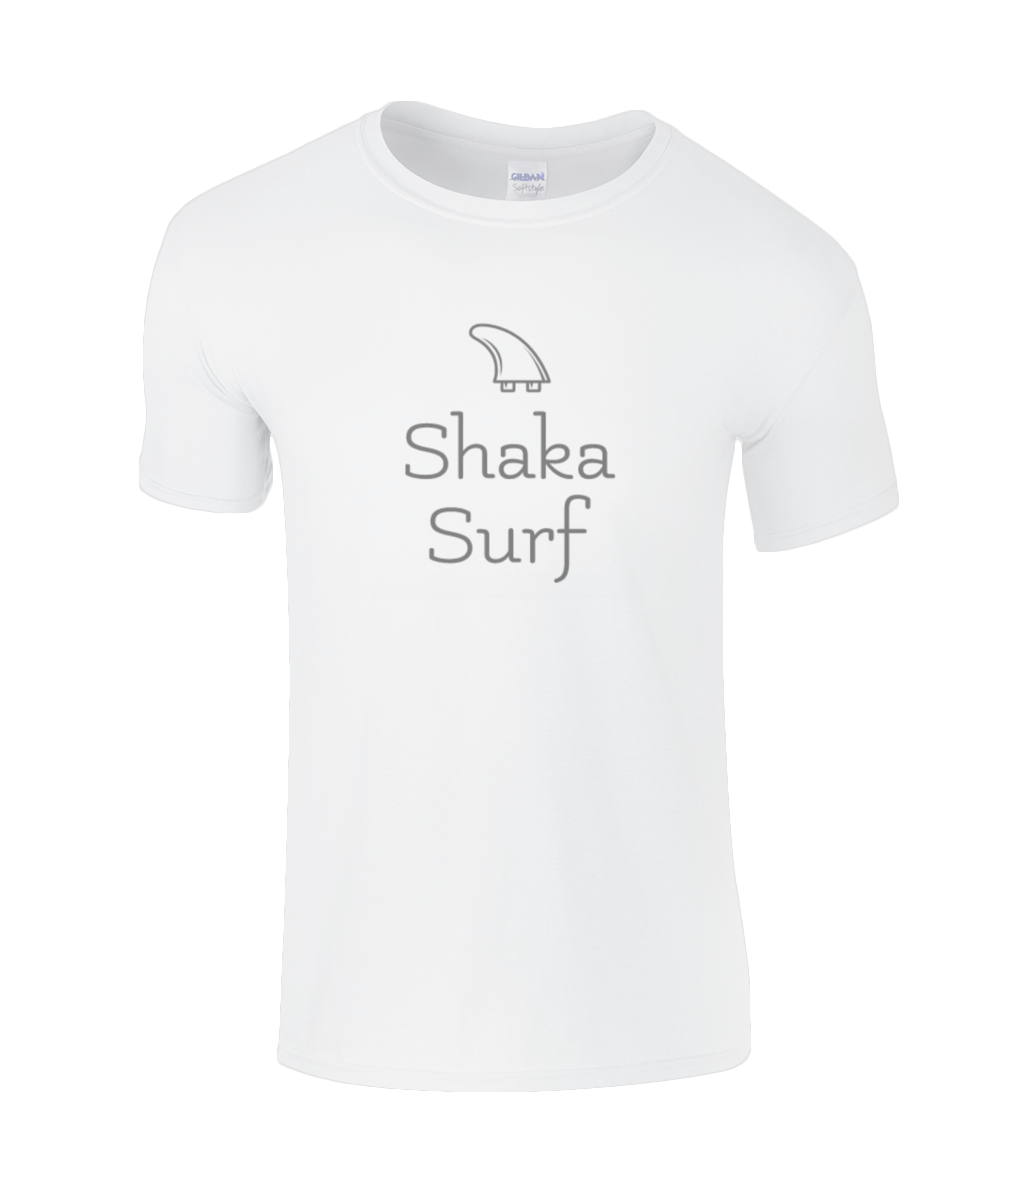 SHAKA SURF - Kids SoftStyle® Ringspun T-Shirt - T Shirts - [shop name]